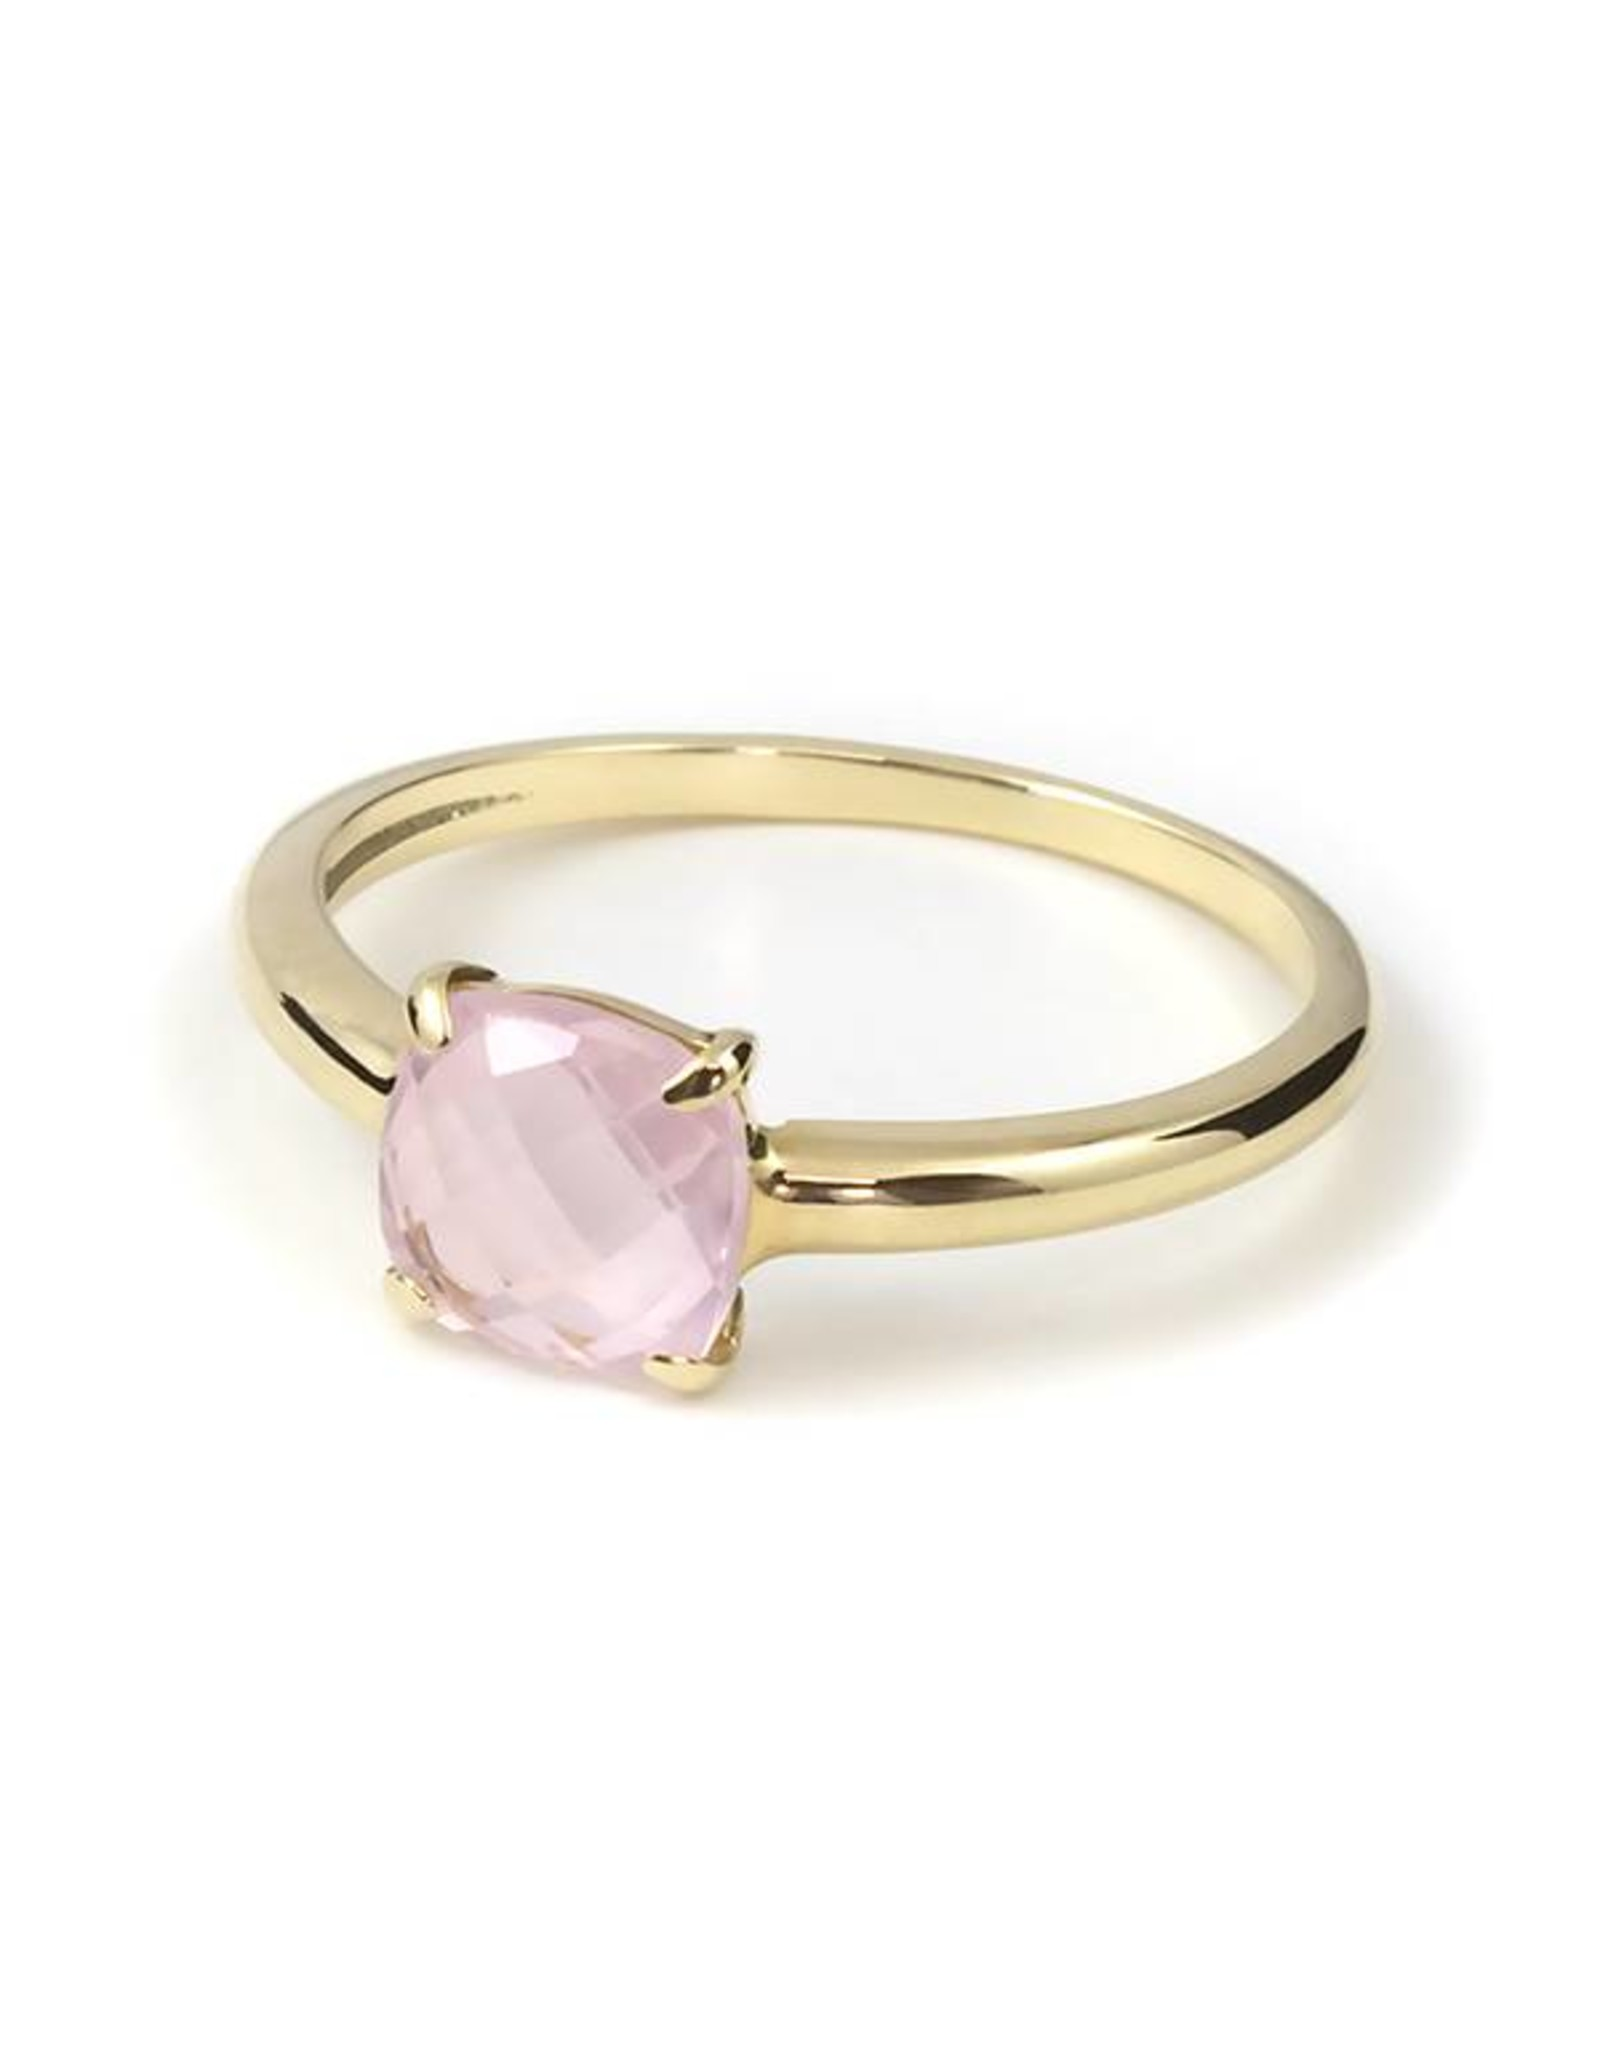 Navarro Ring - Gold + Rose Quartz